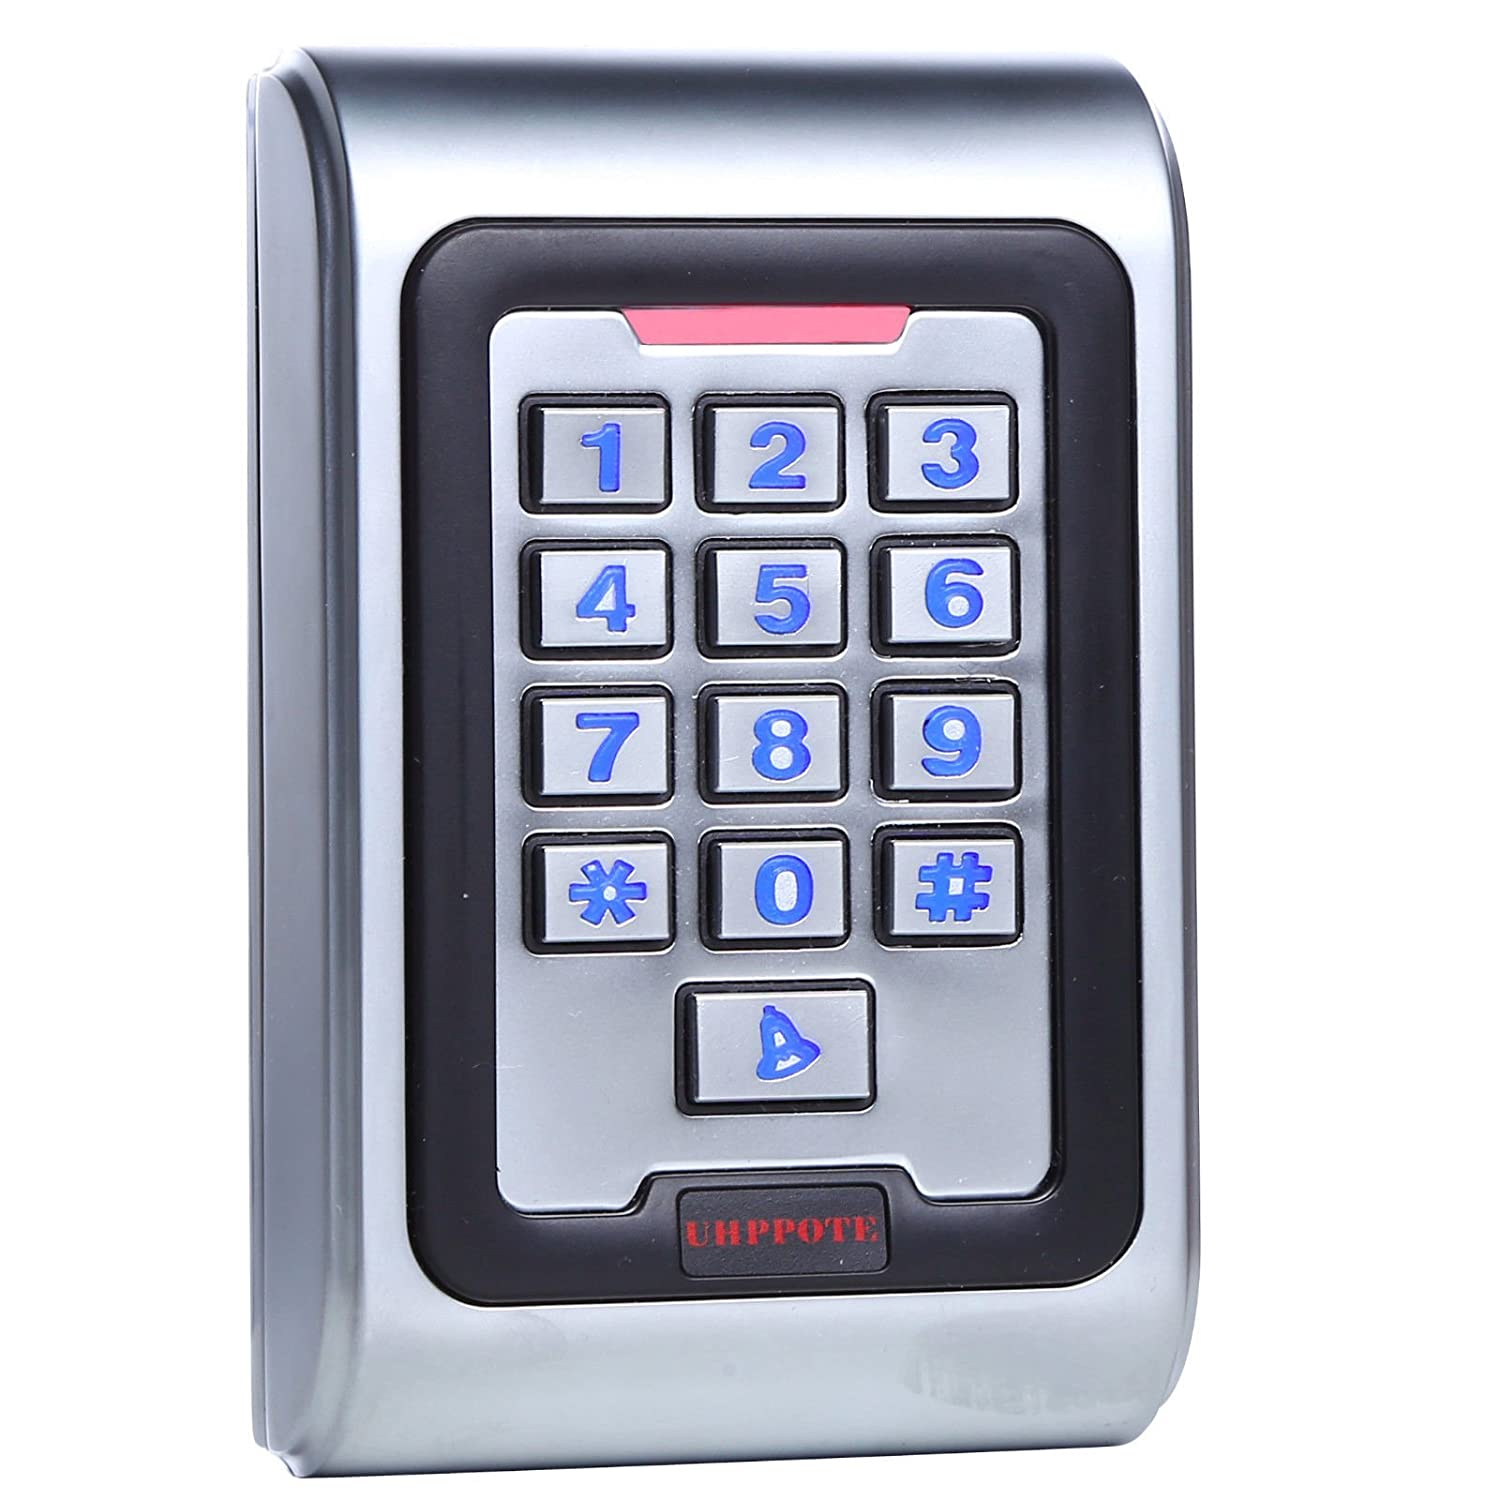 UHPPOTE Metal Zinc Alloy Case Access Control Keypad IP68 Waterproof Standalone Backlight K8EM-W